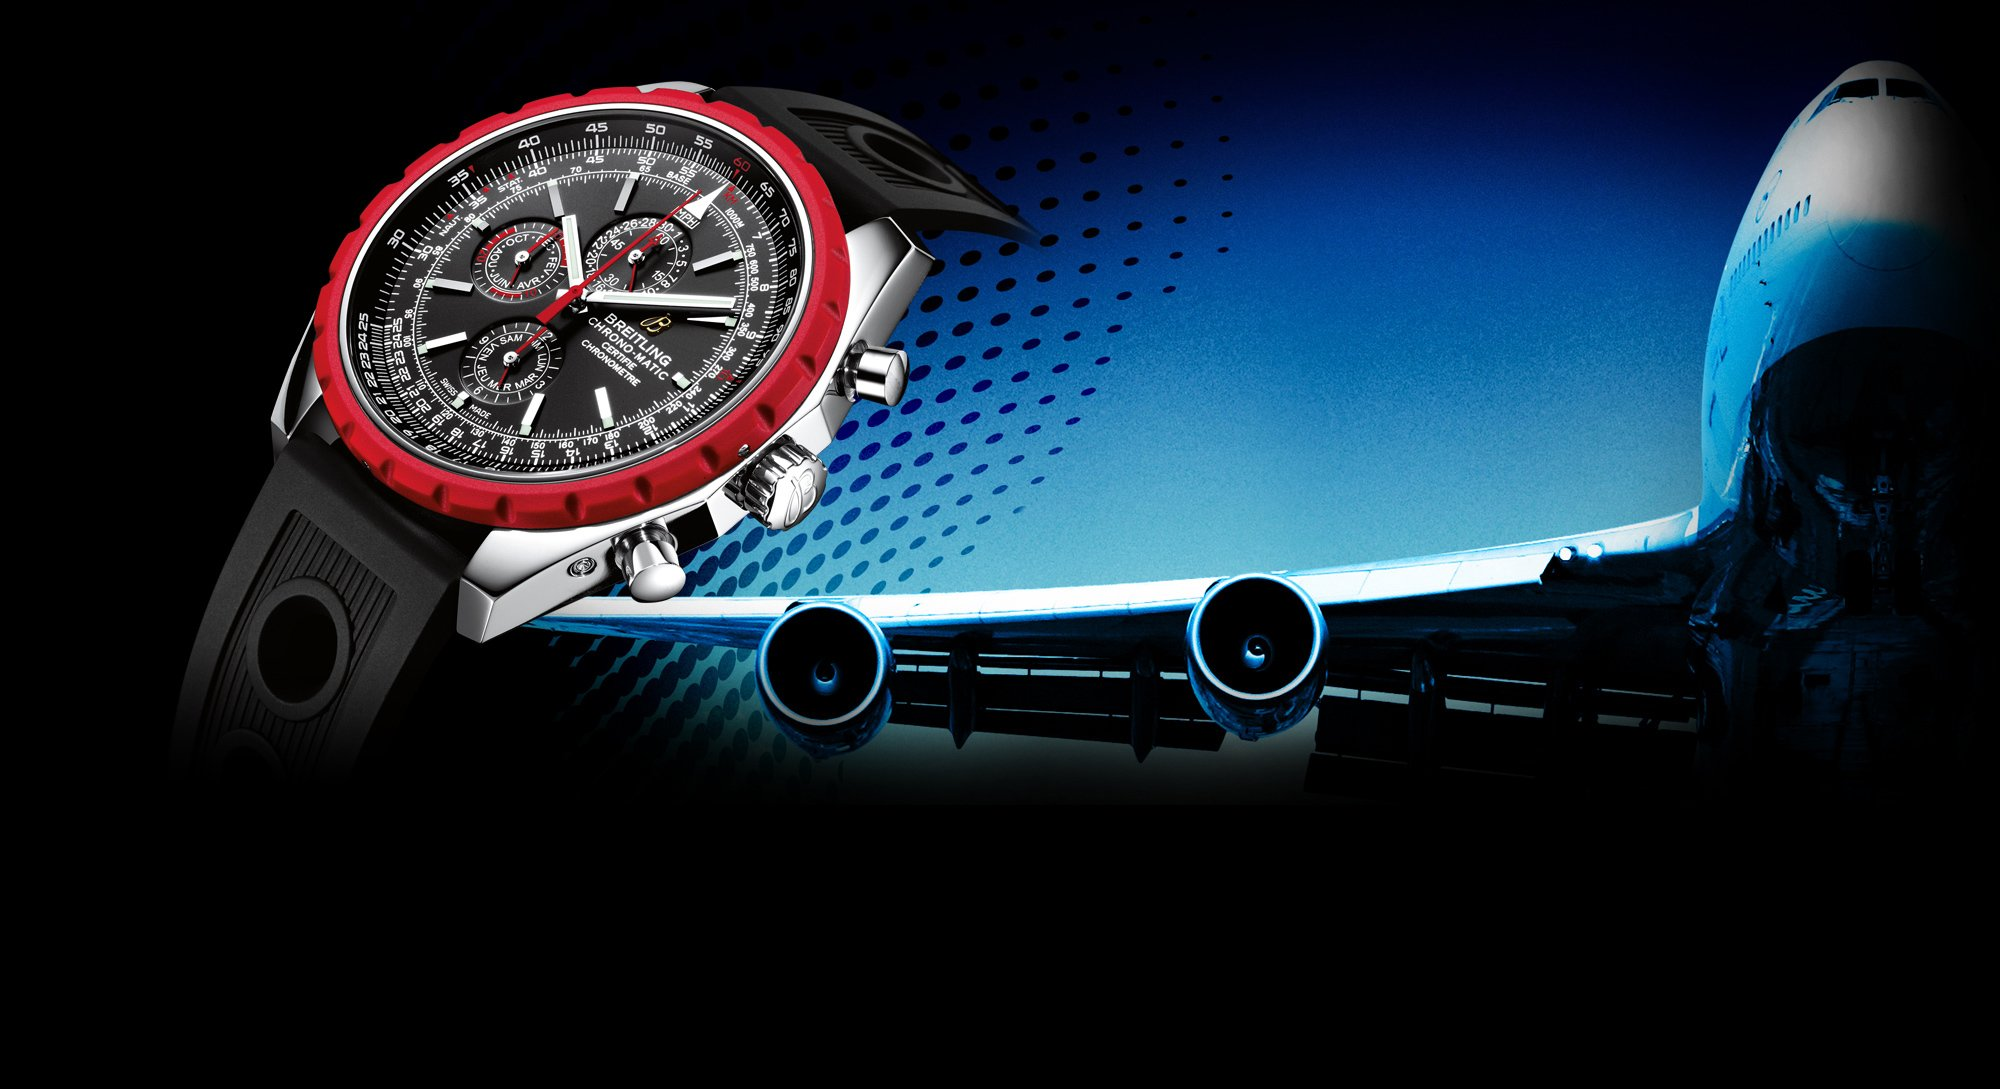 Breitling Watches - Models, Prices, History CHRONEXT All breitling watches pictures